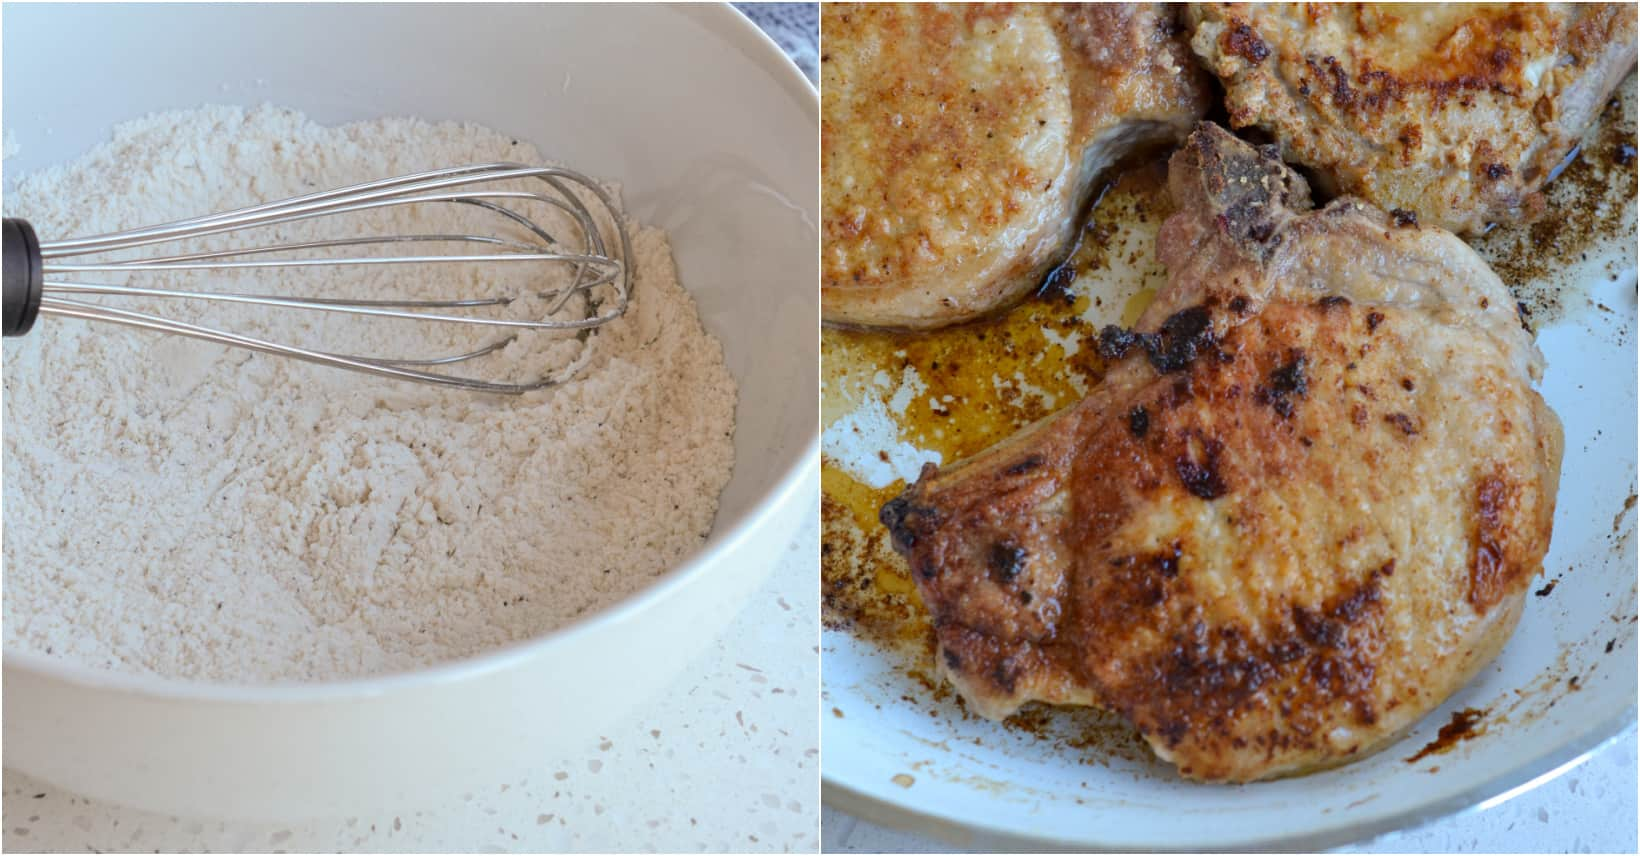 First dredge the pork chops in a flour mixture than fry up in a little oil.